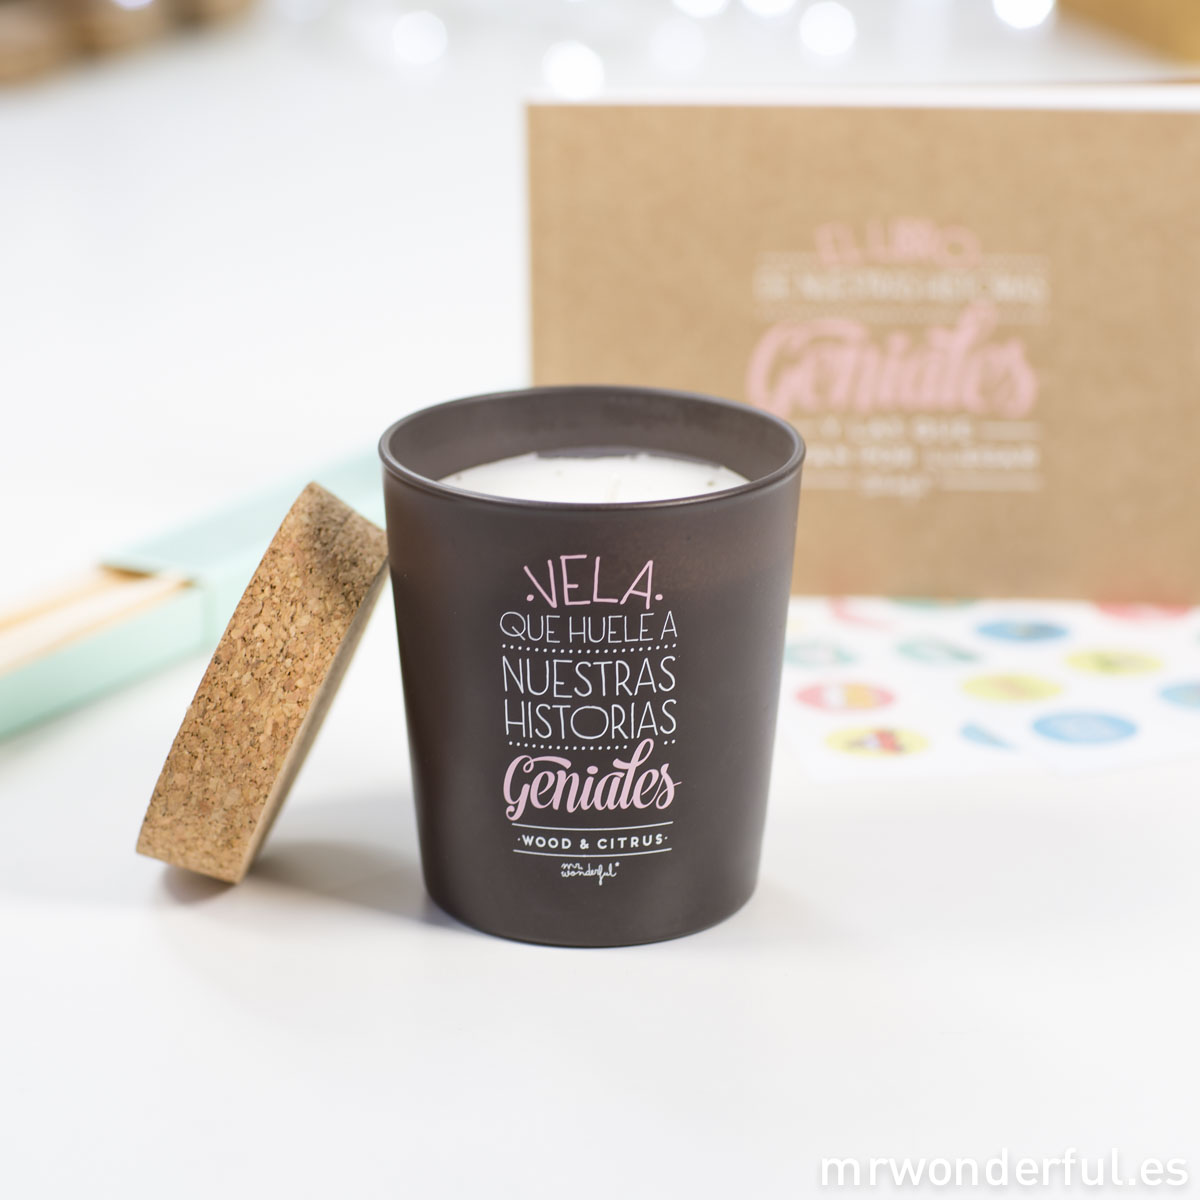 Mr.Wonderful Kit de nuestras historias geniales: vela y libro adhesivos